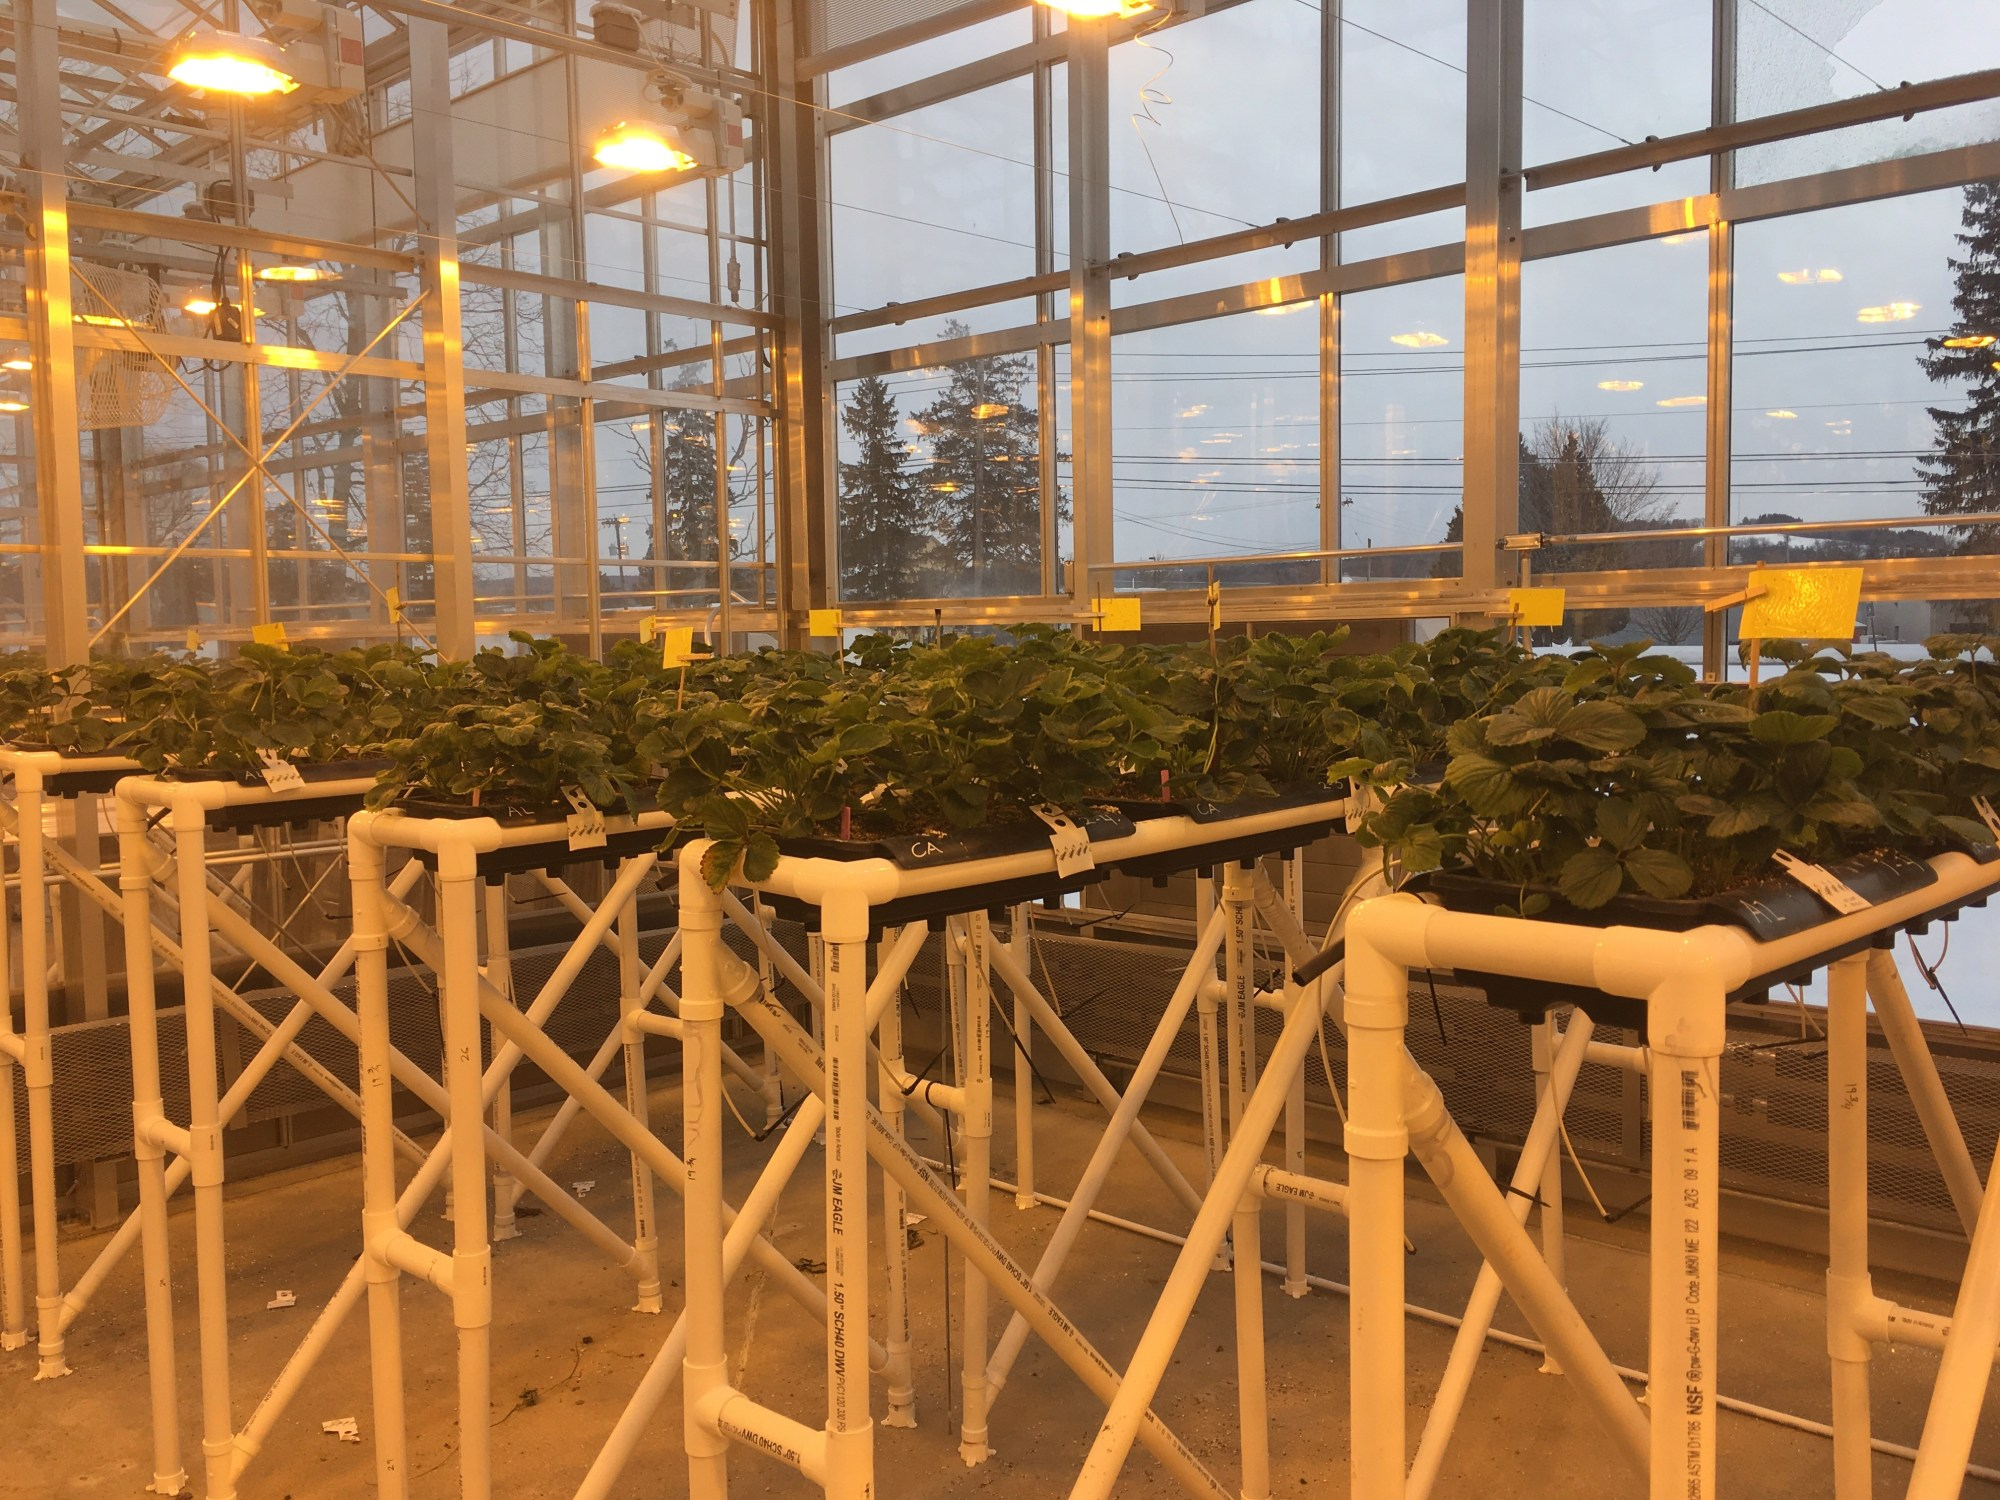 GLASE researchers are conducting greenhouse experiments on tomato and strawberry to analyze the relationship between light, carbon dioxide and plant growth.